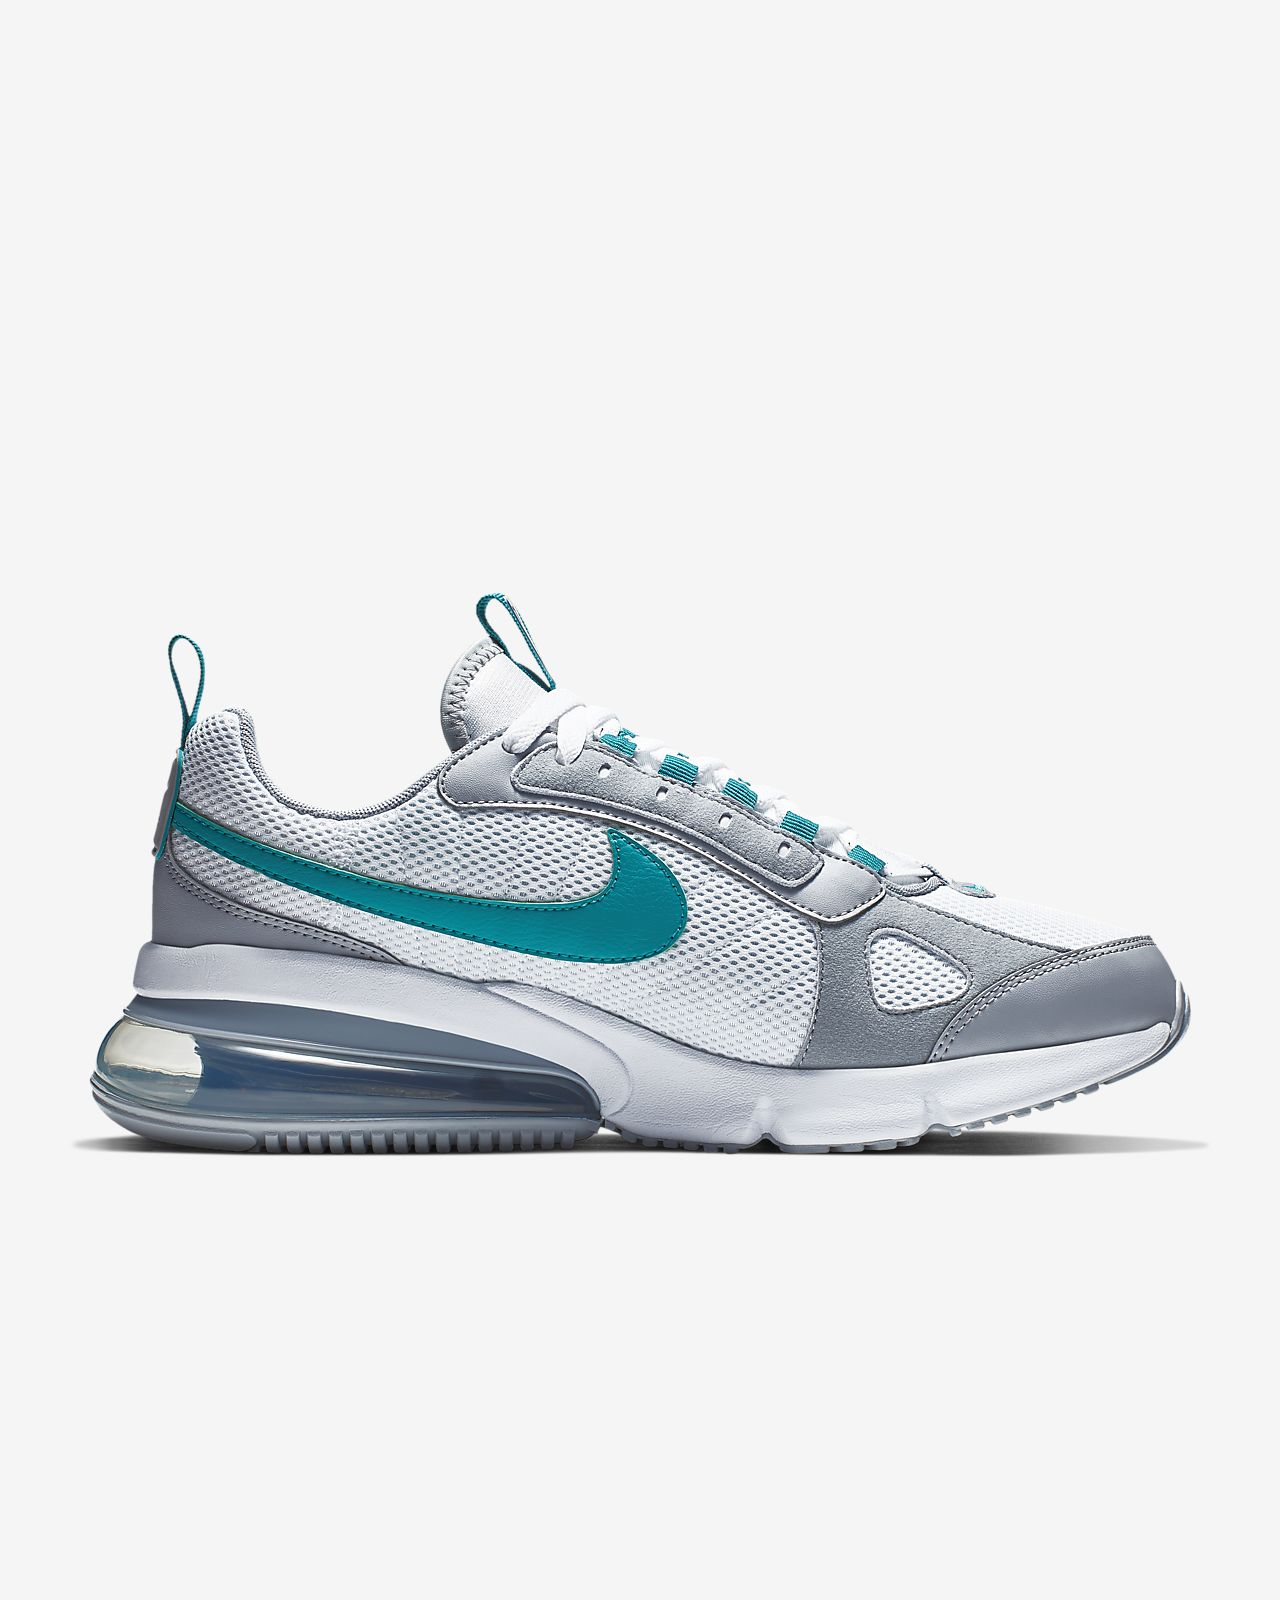 new arrival 40fc2 a2d67 Low Resolution Nike Air Max 270 Futura Men s Shoe Nike Air Max 270 Futura  Men s Shoe